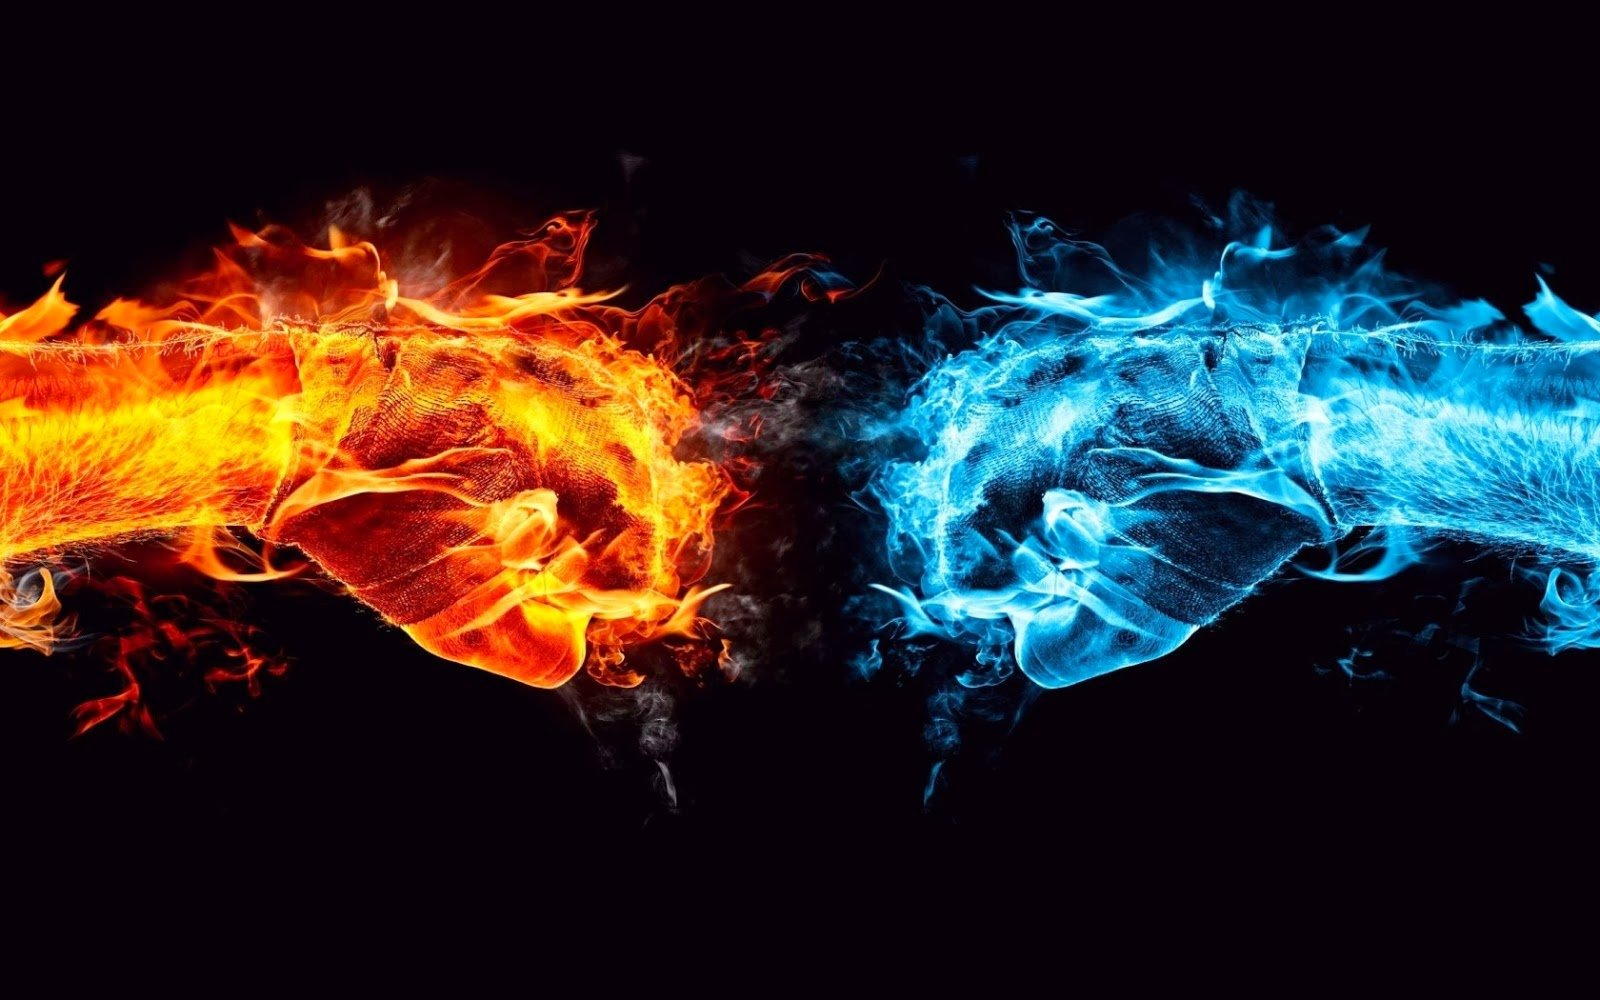 Blue And Red Fire Wallpaper 1600x1000